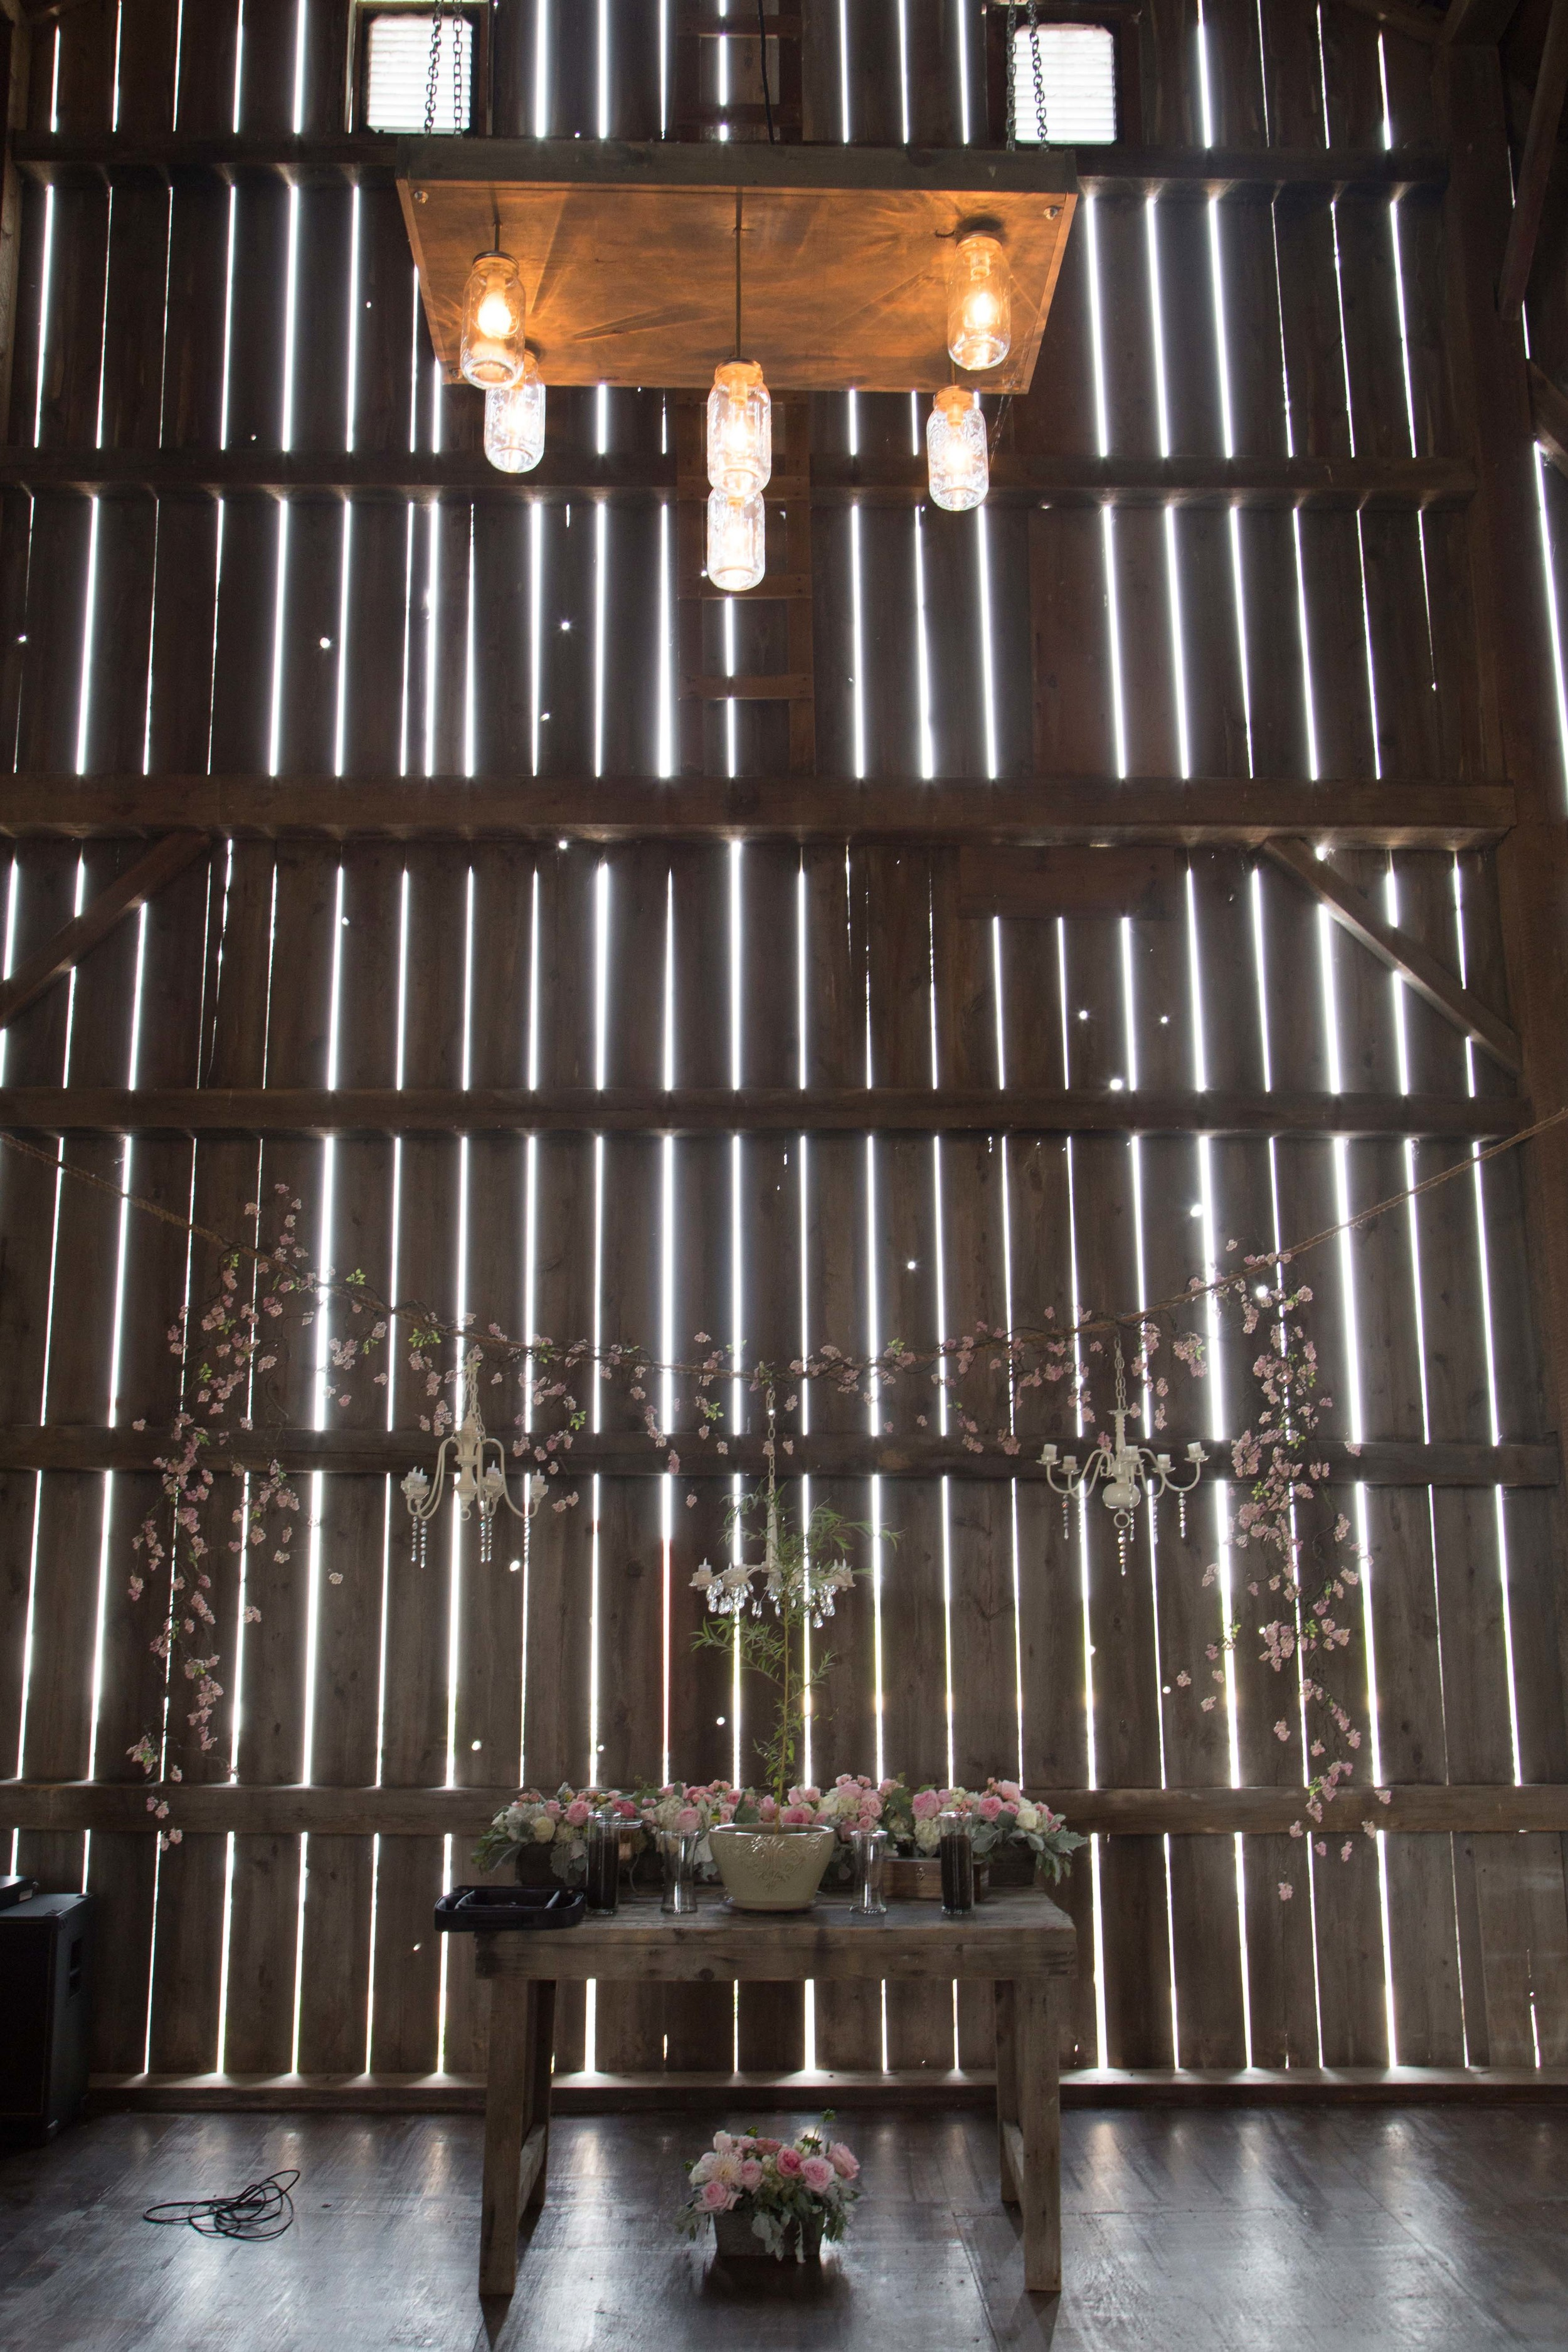 7-3-Barn_Altar_whimsical_chandelier_6662 2.jpg